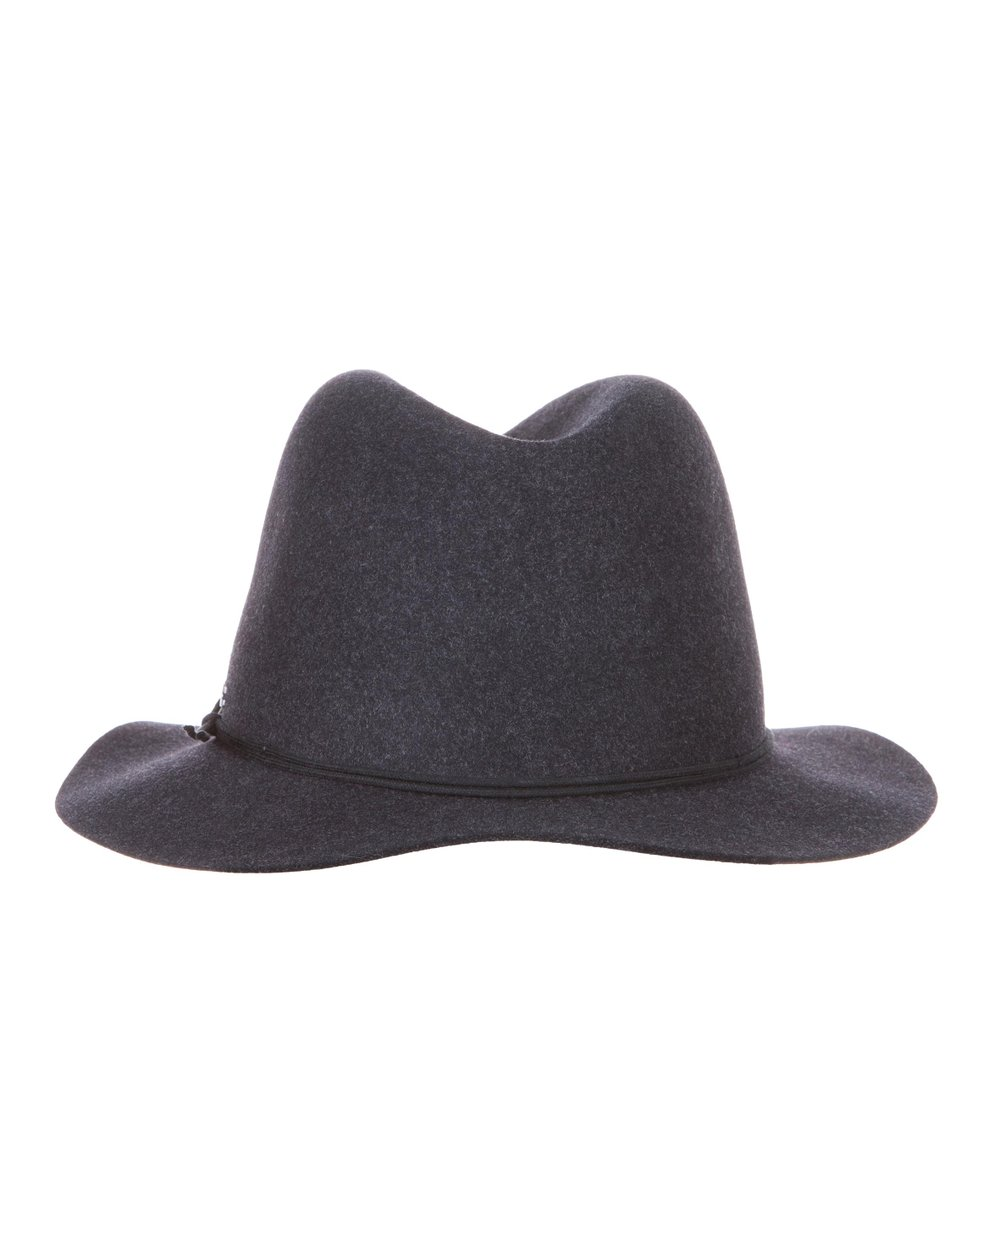 aaac665967a The Drifter Hat by Coal Online